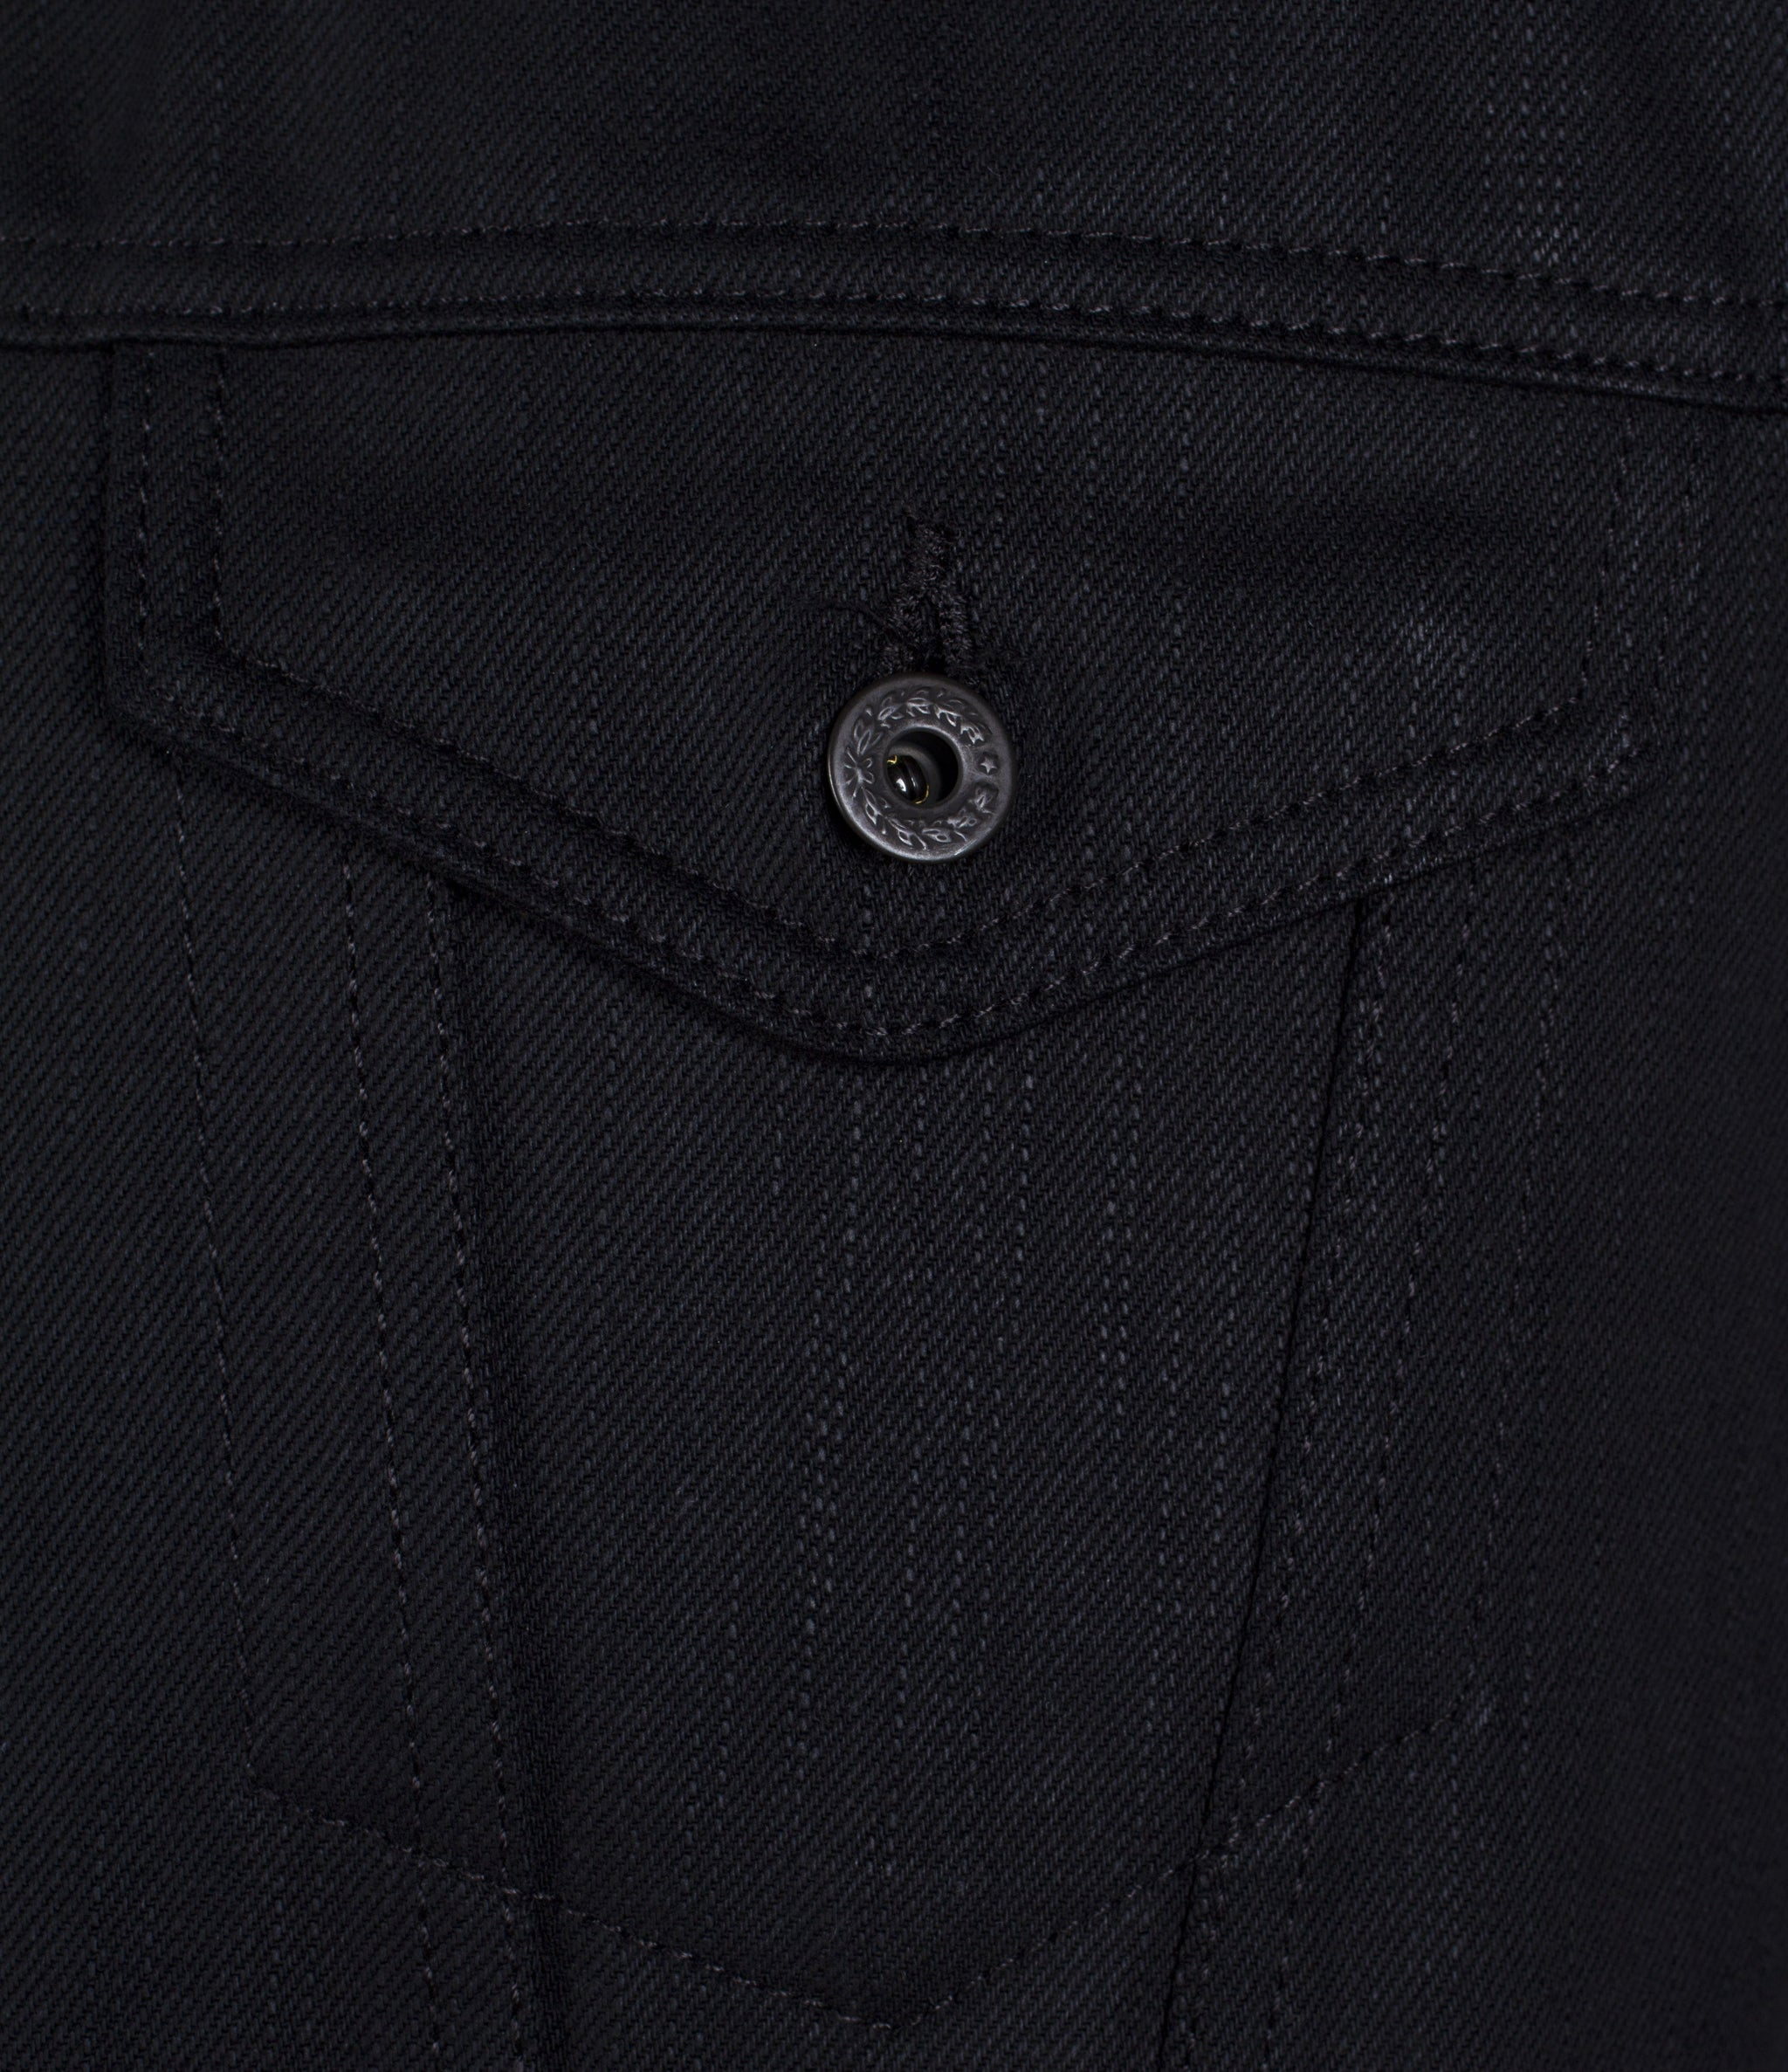 The Ironside 12.5oz Double Black Cone Mills Selvage Jacket Pre Order